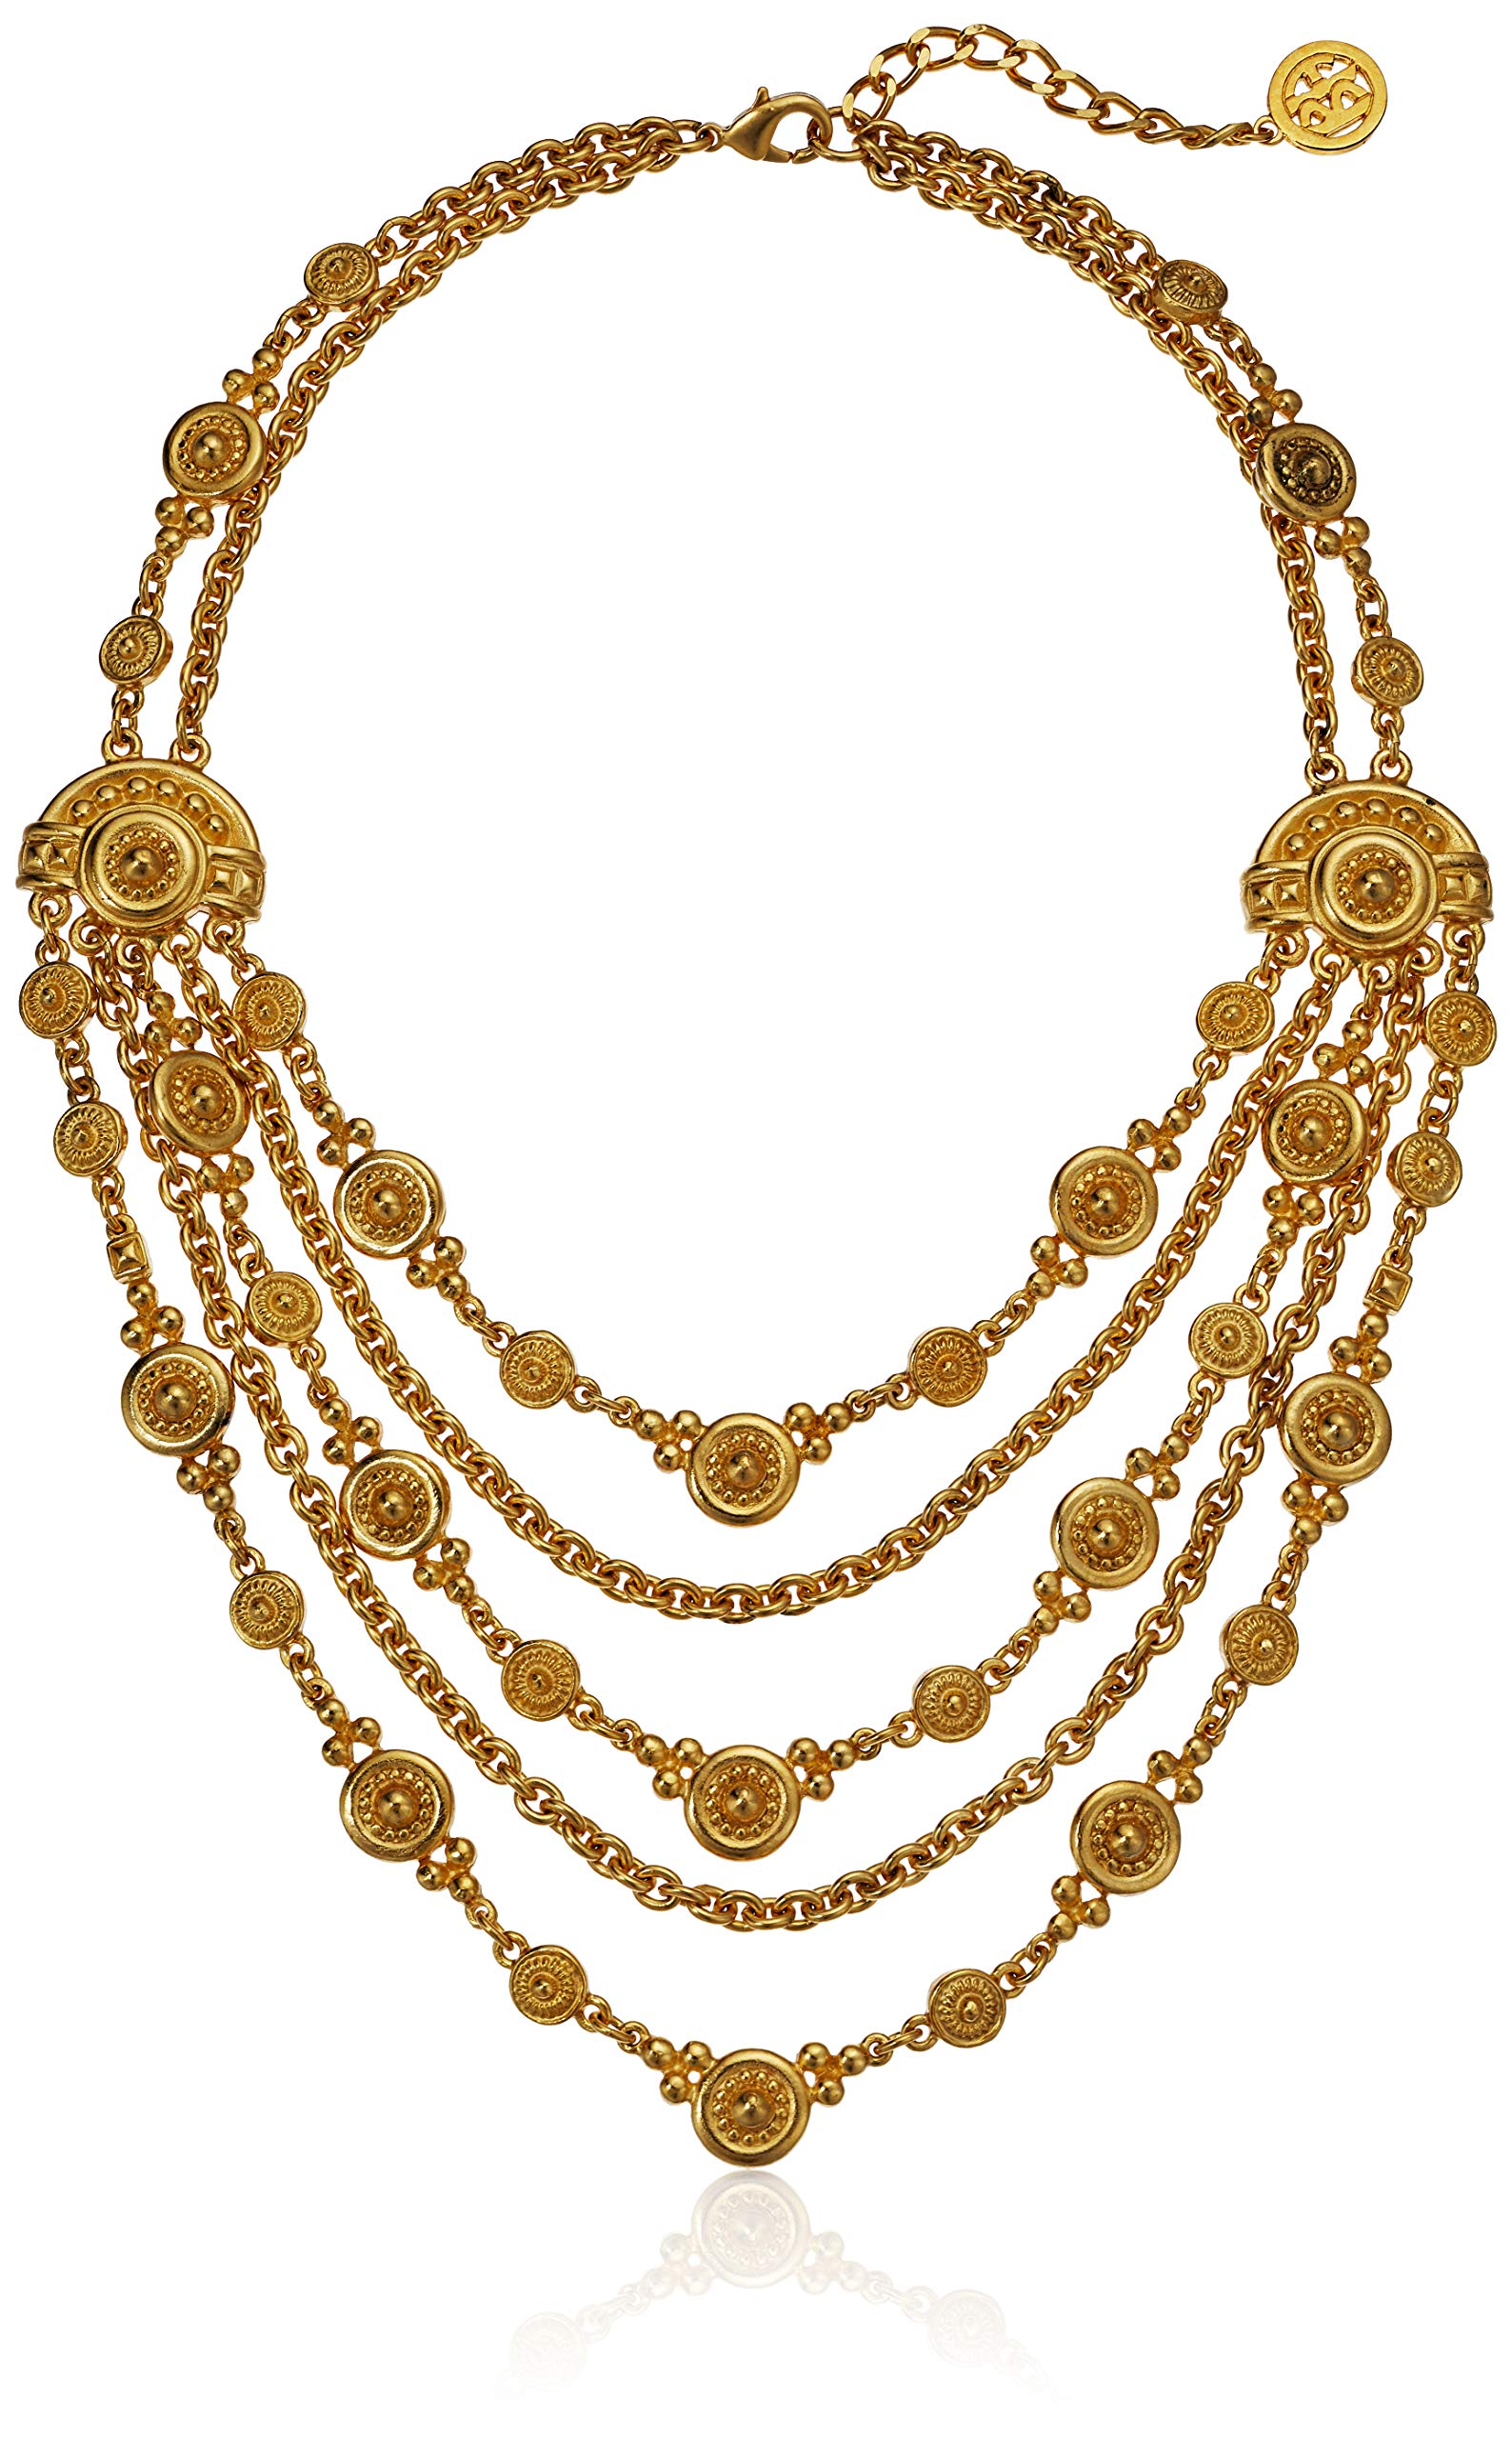 Ben-Amun Jewelry Helen of Troy Gold Multi Layer Chain Necklace, 15'' long by Ben-Amun Jewelry